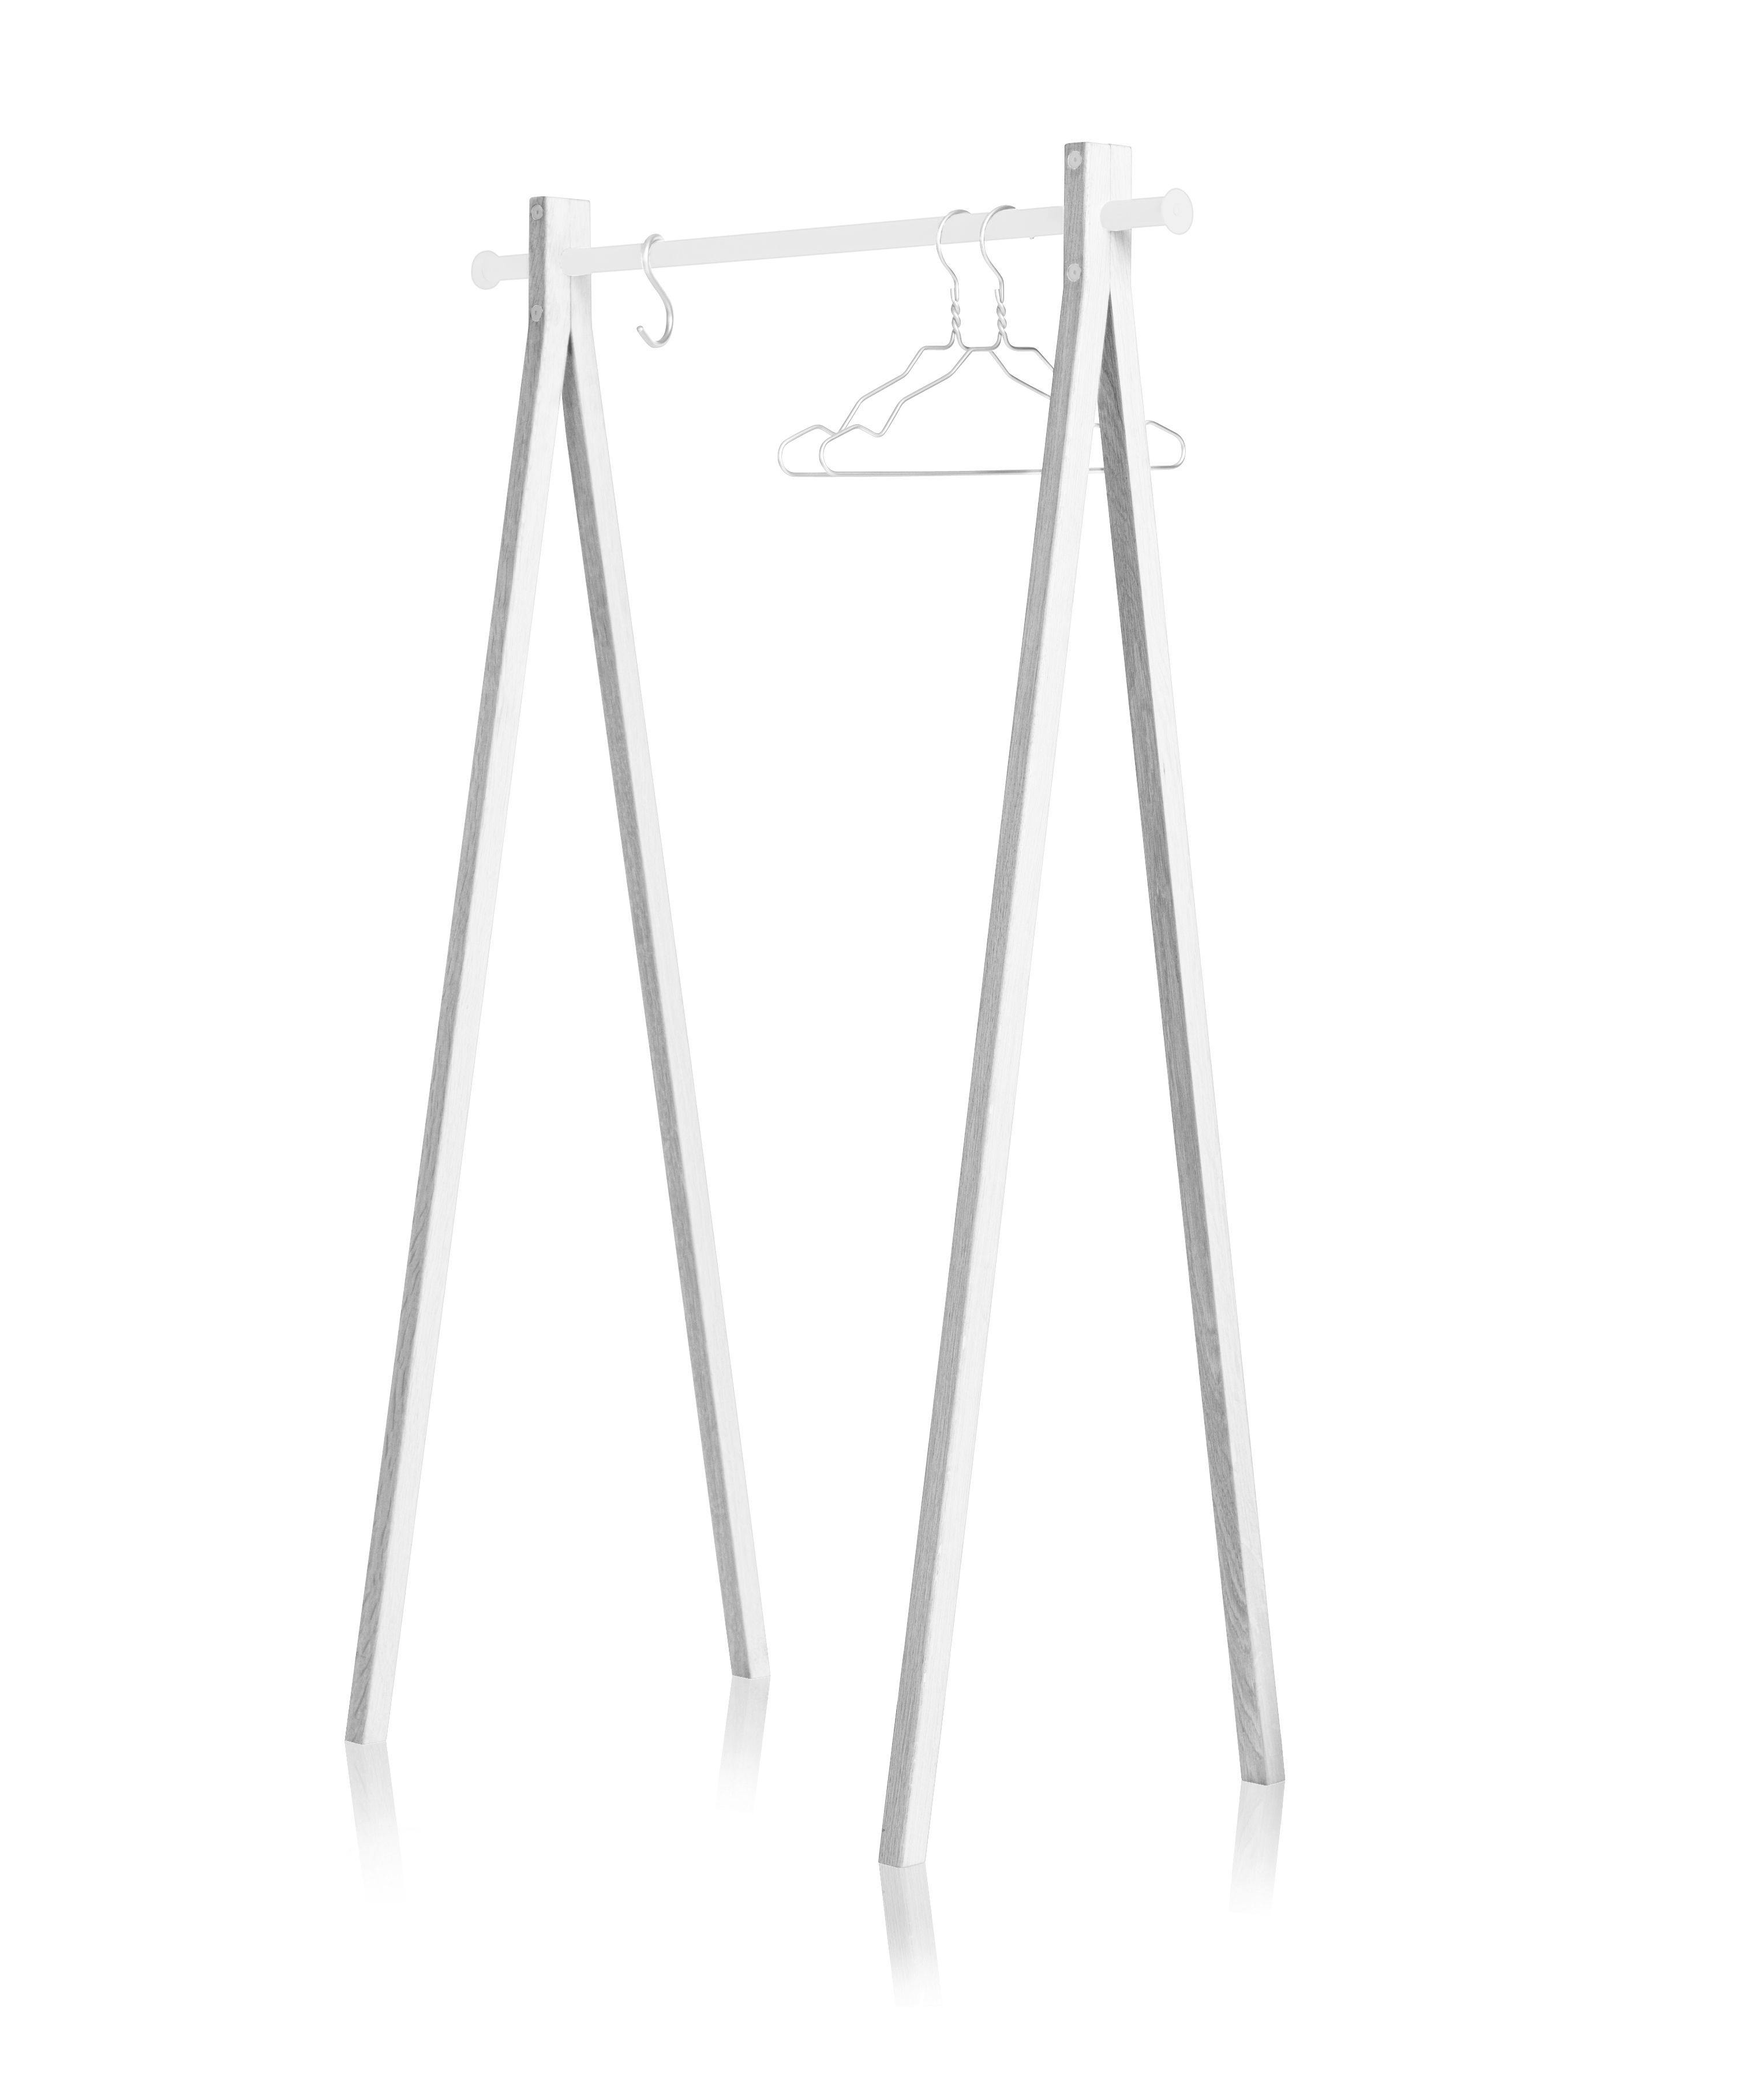 Furniture - Coat Racks & Pegs - Dress-up Rack by Nomess - White / white bar - Lacquered aluminium, Painted ashwoodwood